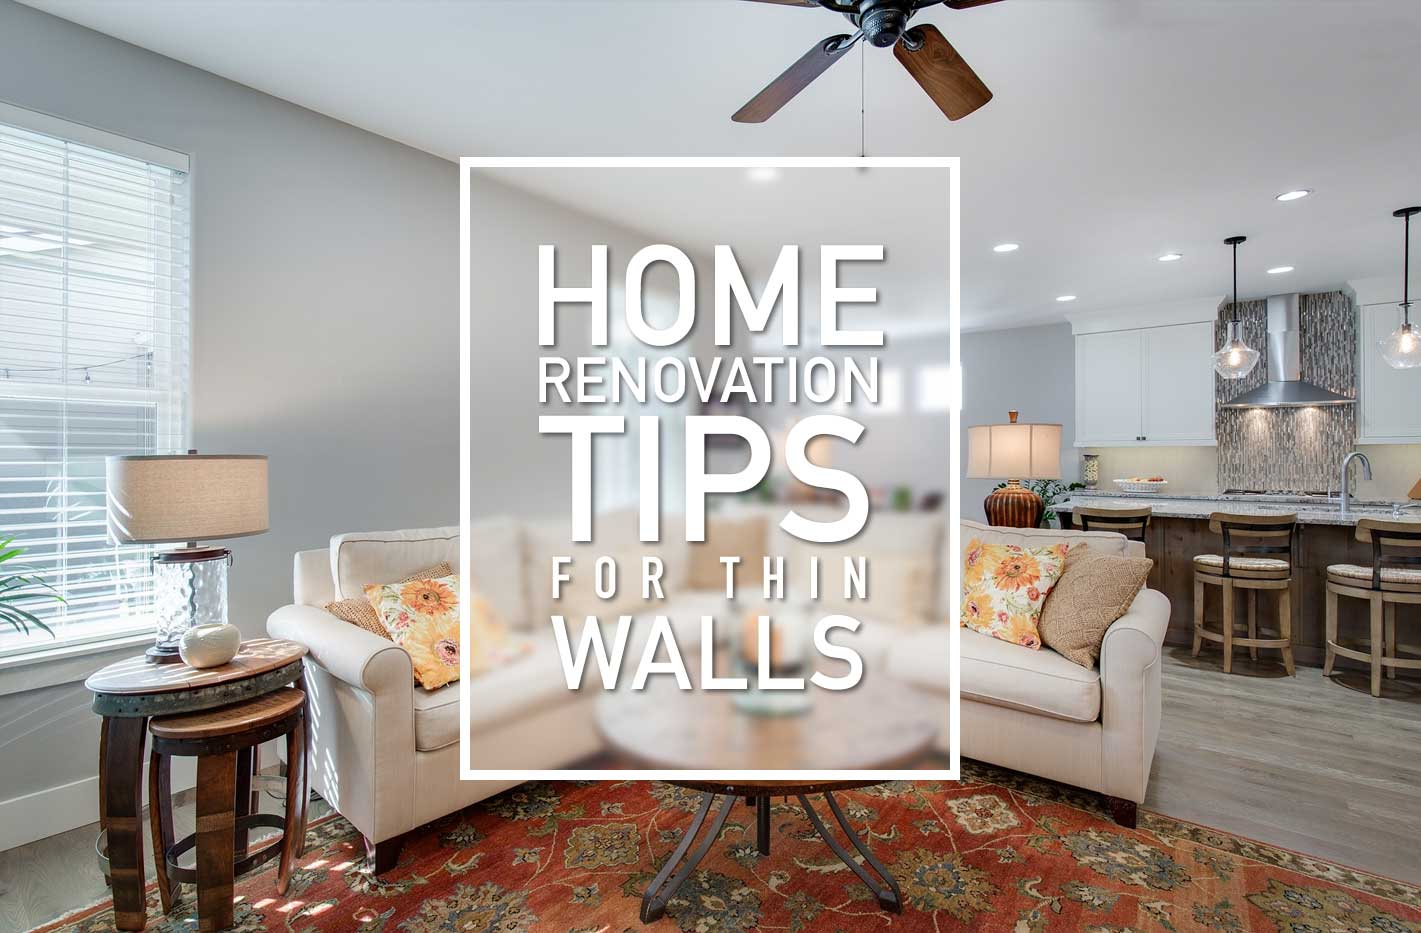 Home Renovation Ideas For Those Thin Walls